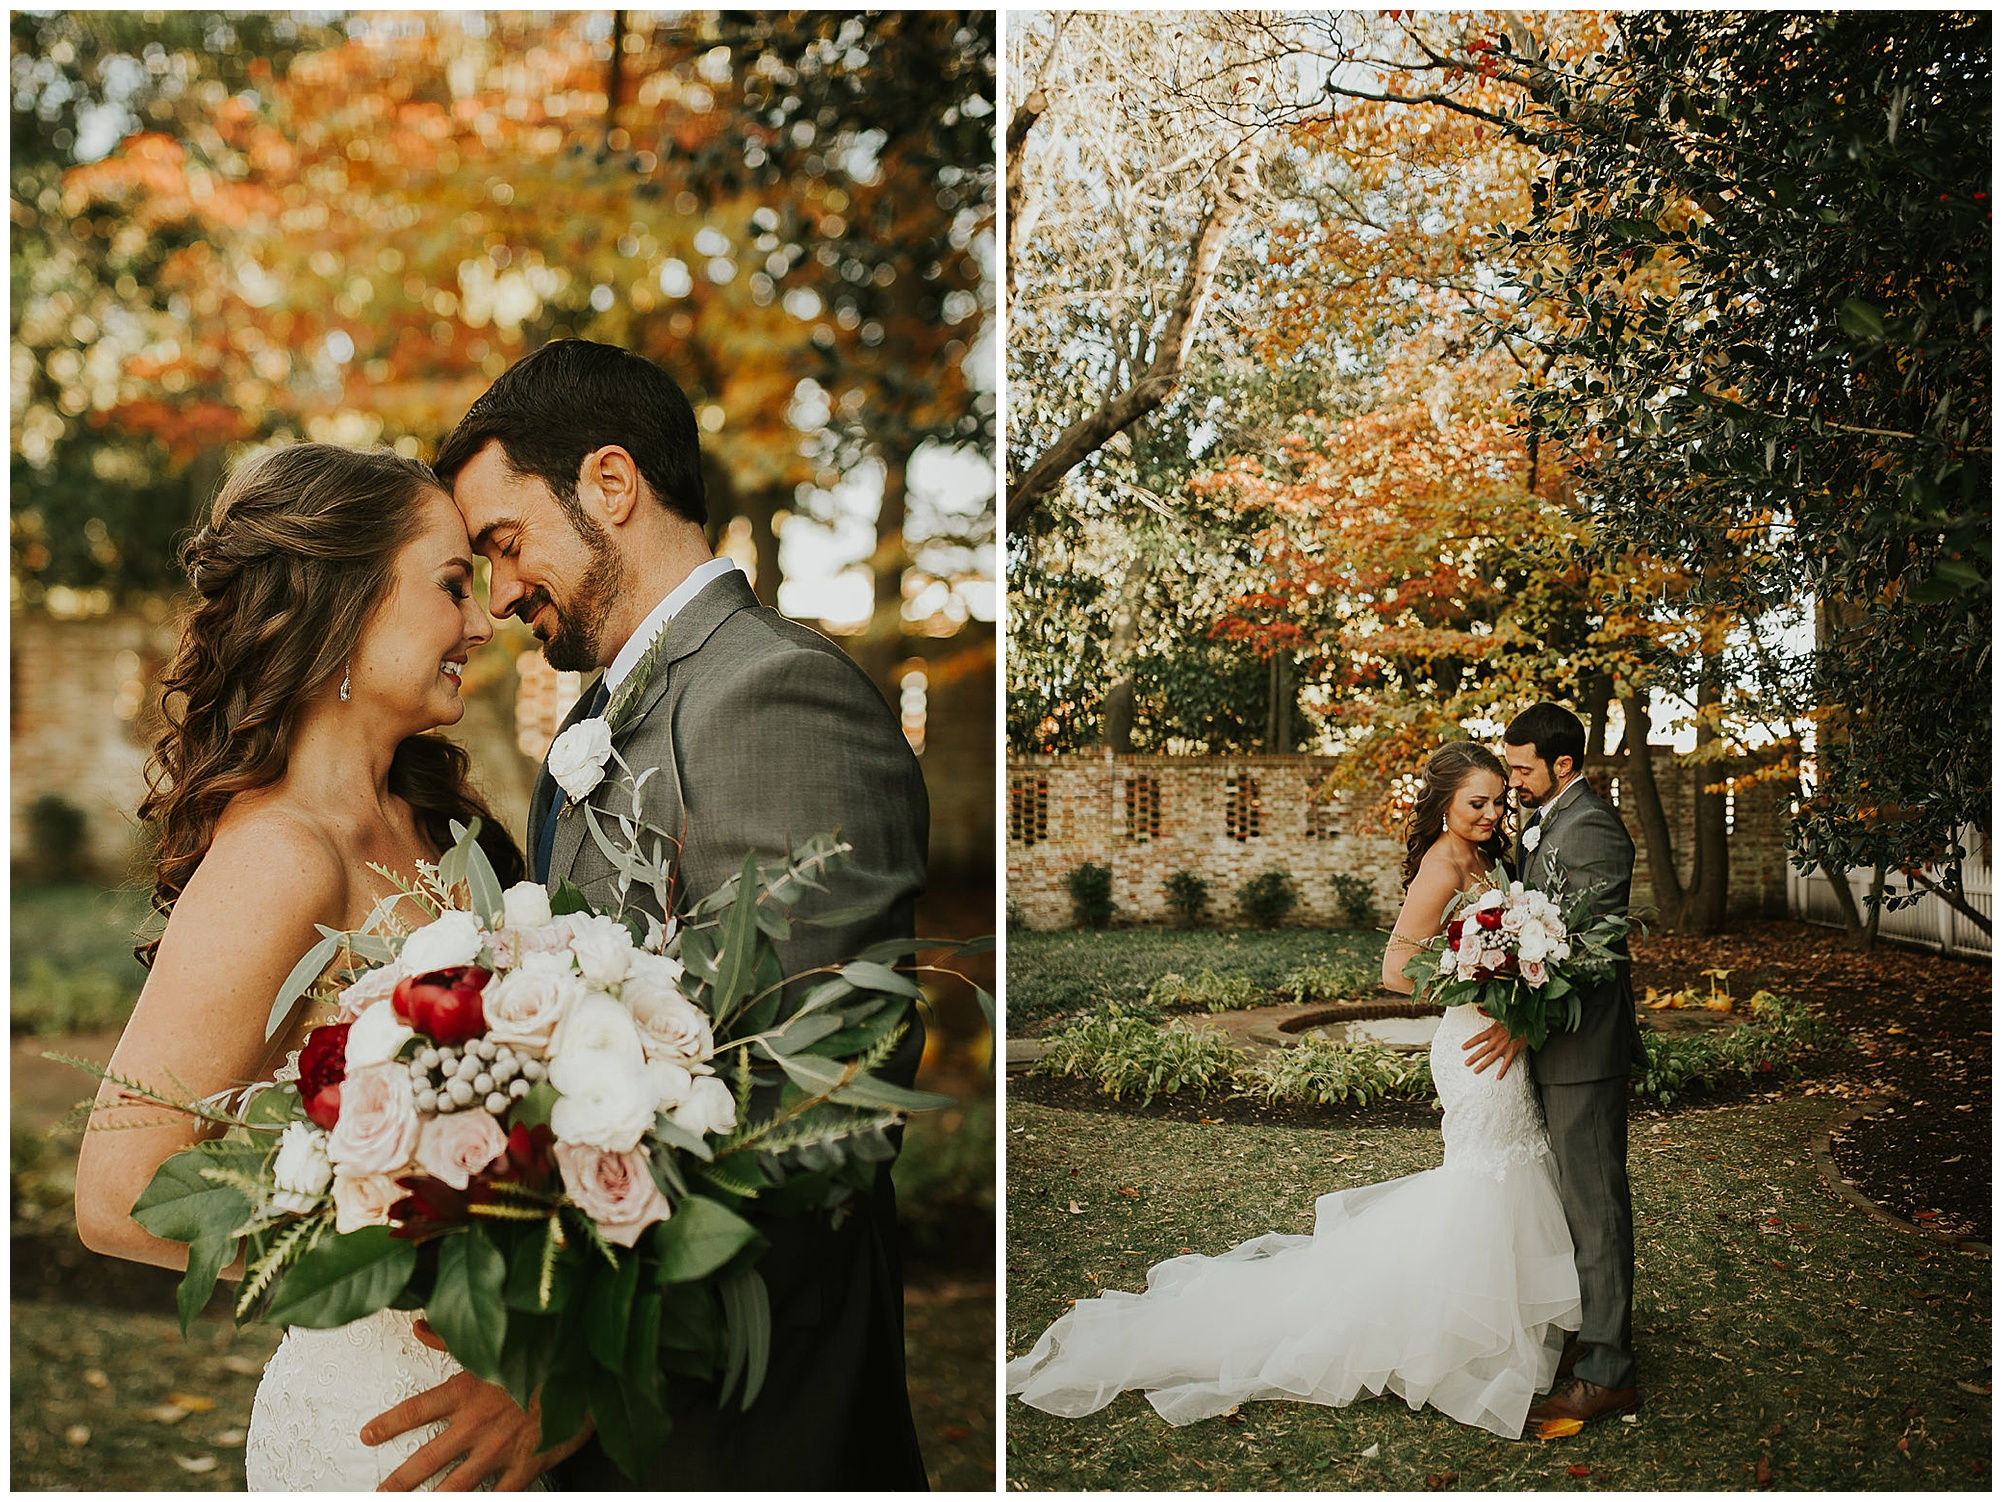 fall inspired wedding bouquet. undone untamed and glorious. intimate bride and groom outdoor photo inspo from my eastern shore wedding blog. featured vendor: tidewater inn in easton maryland. coastal eastern shore wedding ideas and inspiration.